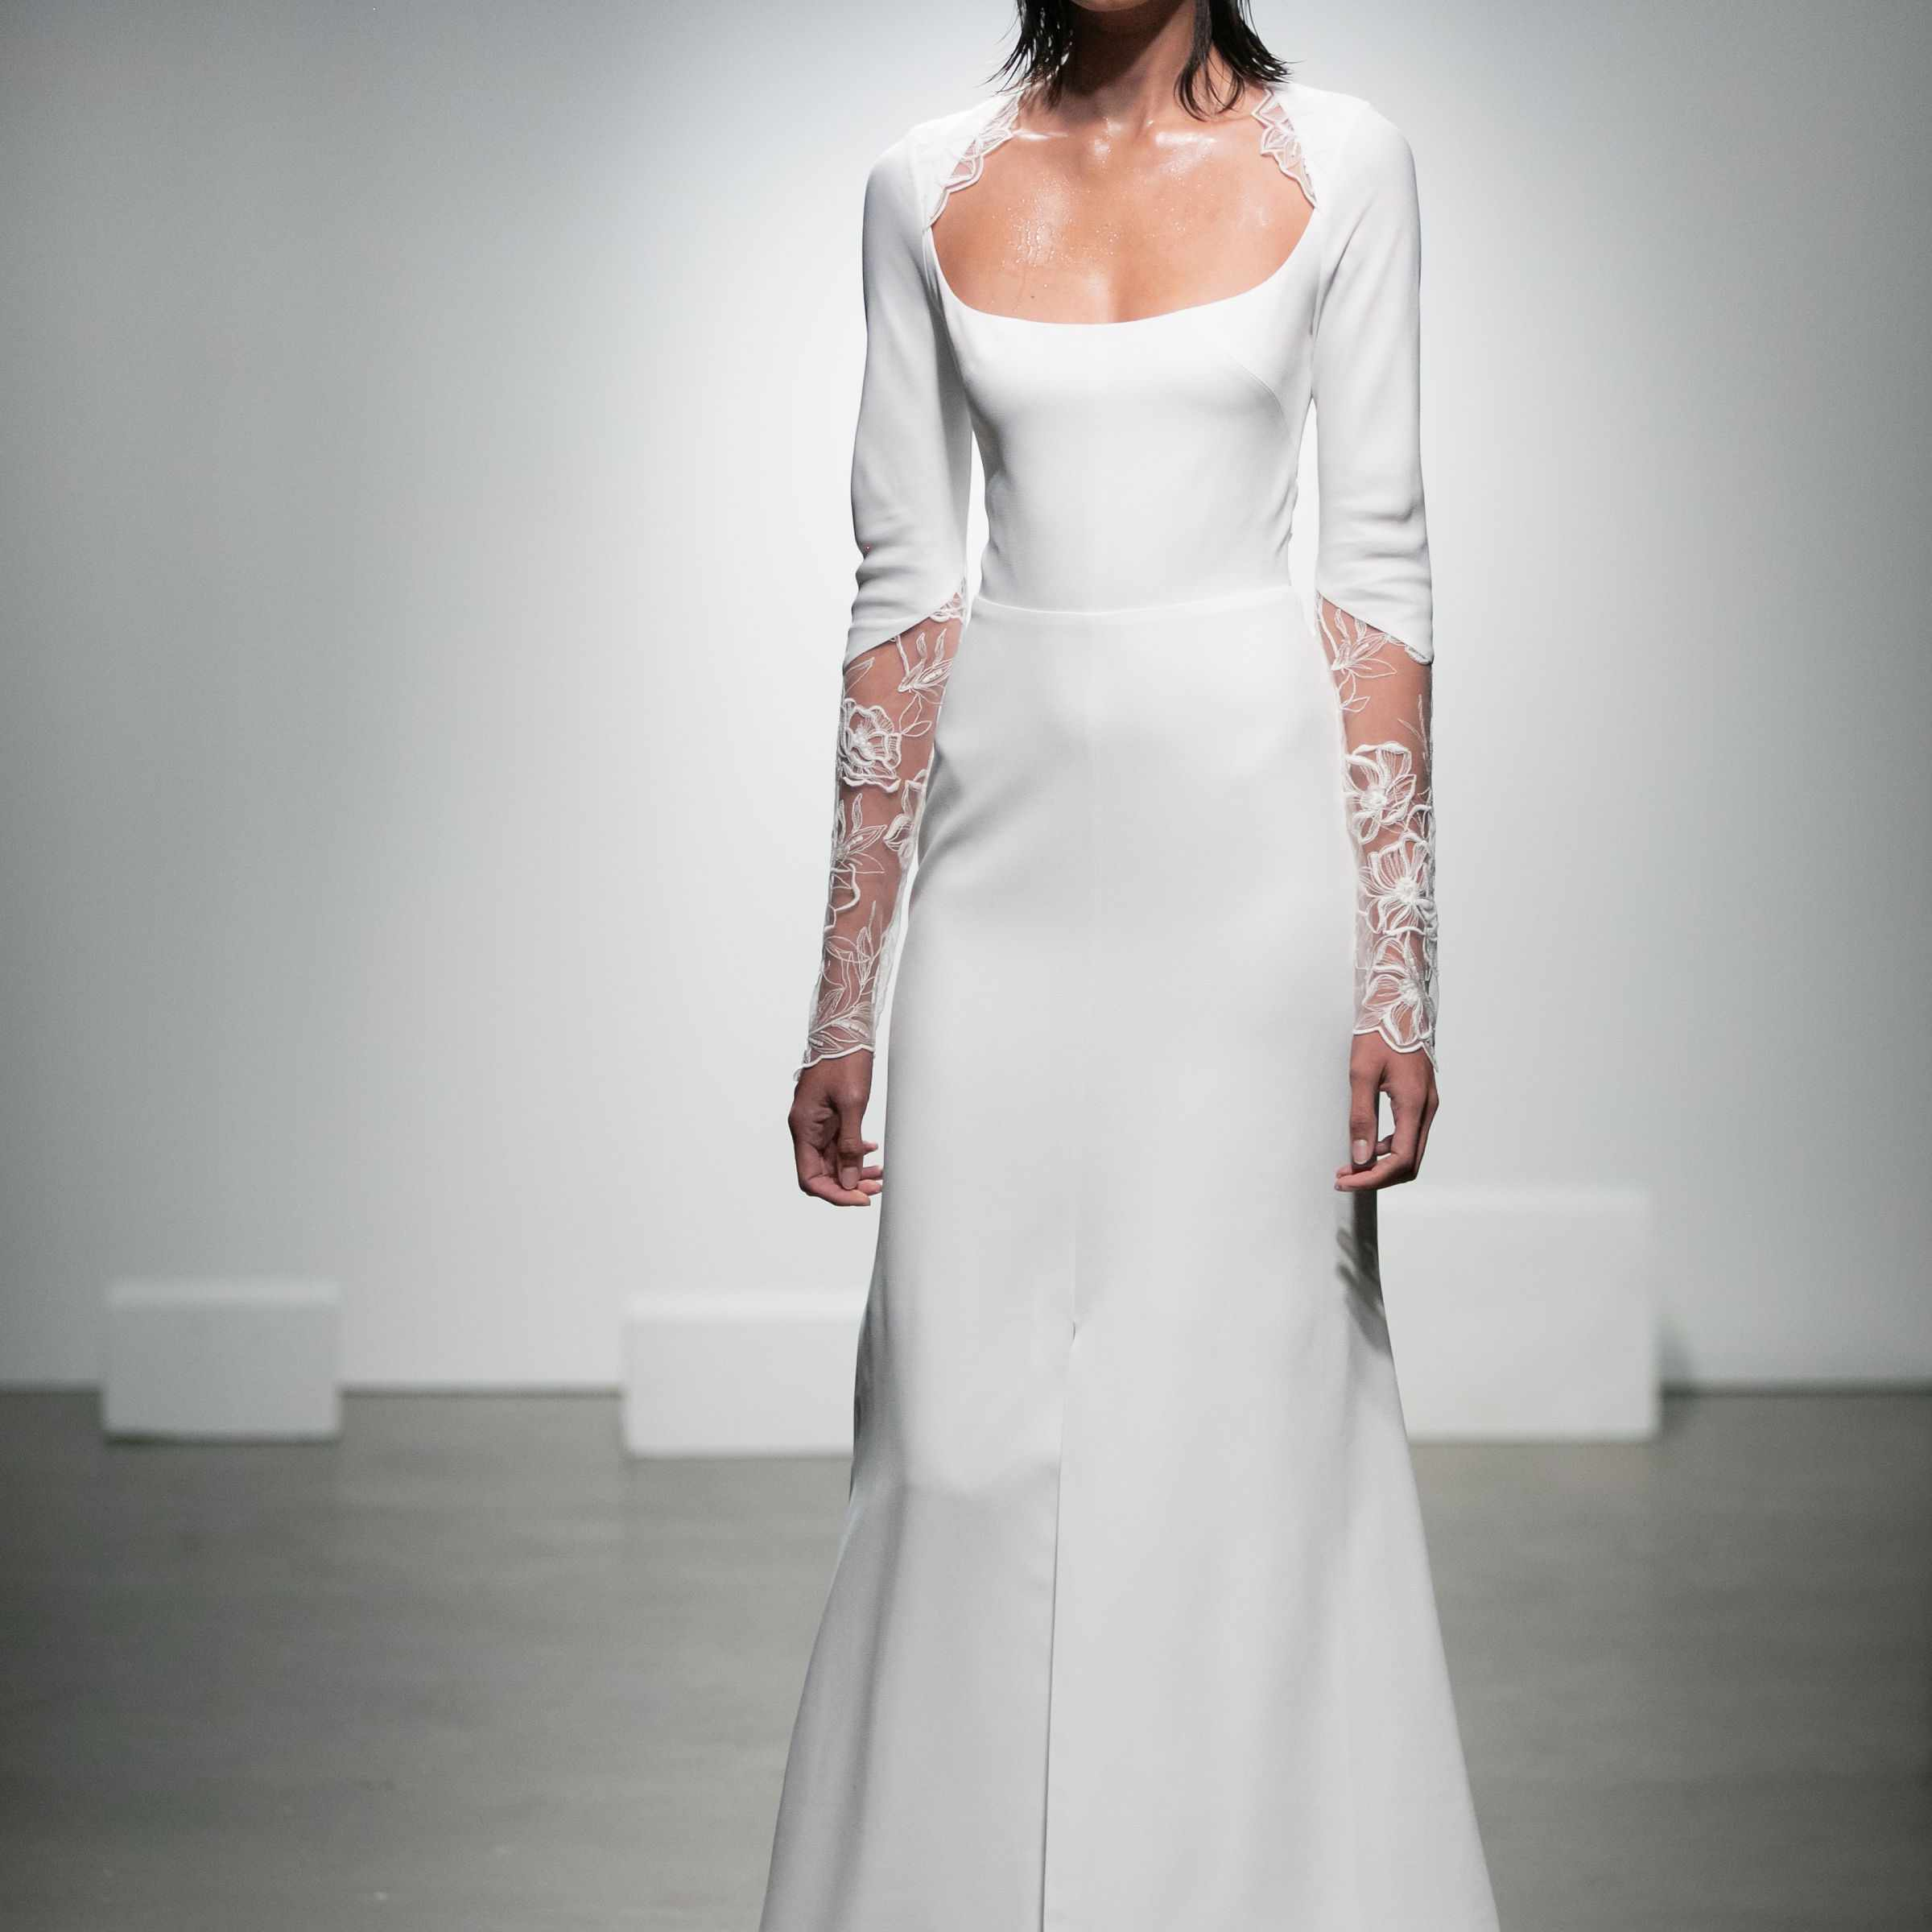 Long-sleeve crepe dress with scoop neckline and floral embroidery on the sleeves